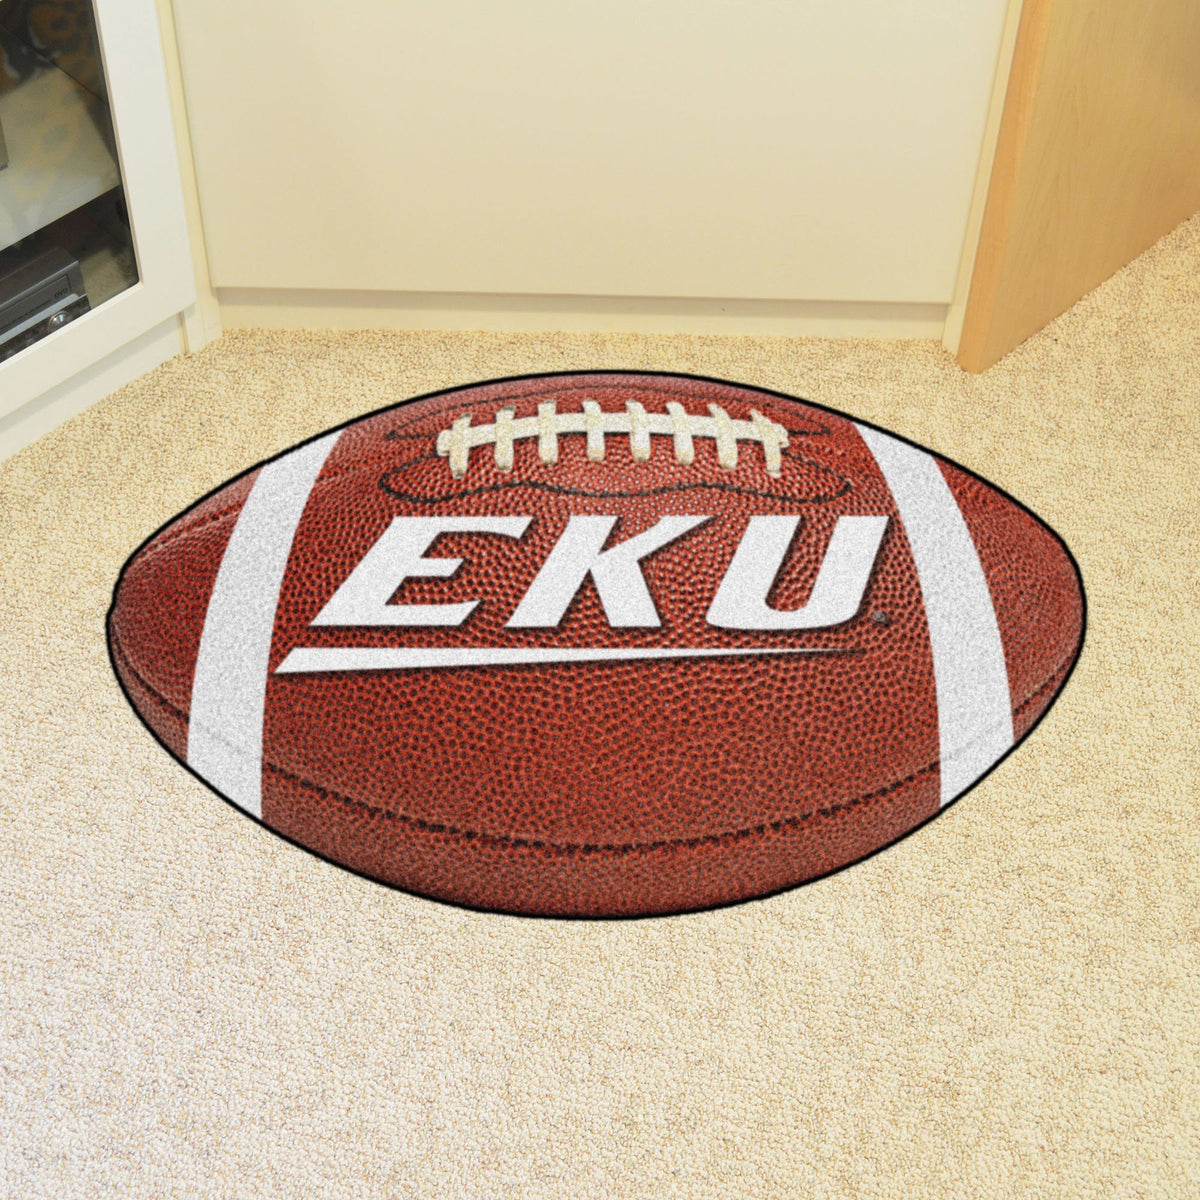 Collegiate - Football Mat: A - K Collegiate Mats, Rectangular Mats, Football Mat, Collegiate, Home Fan Mats Eastern Kentucky